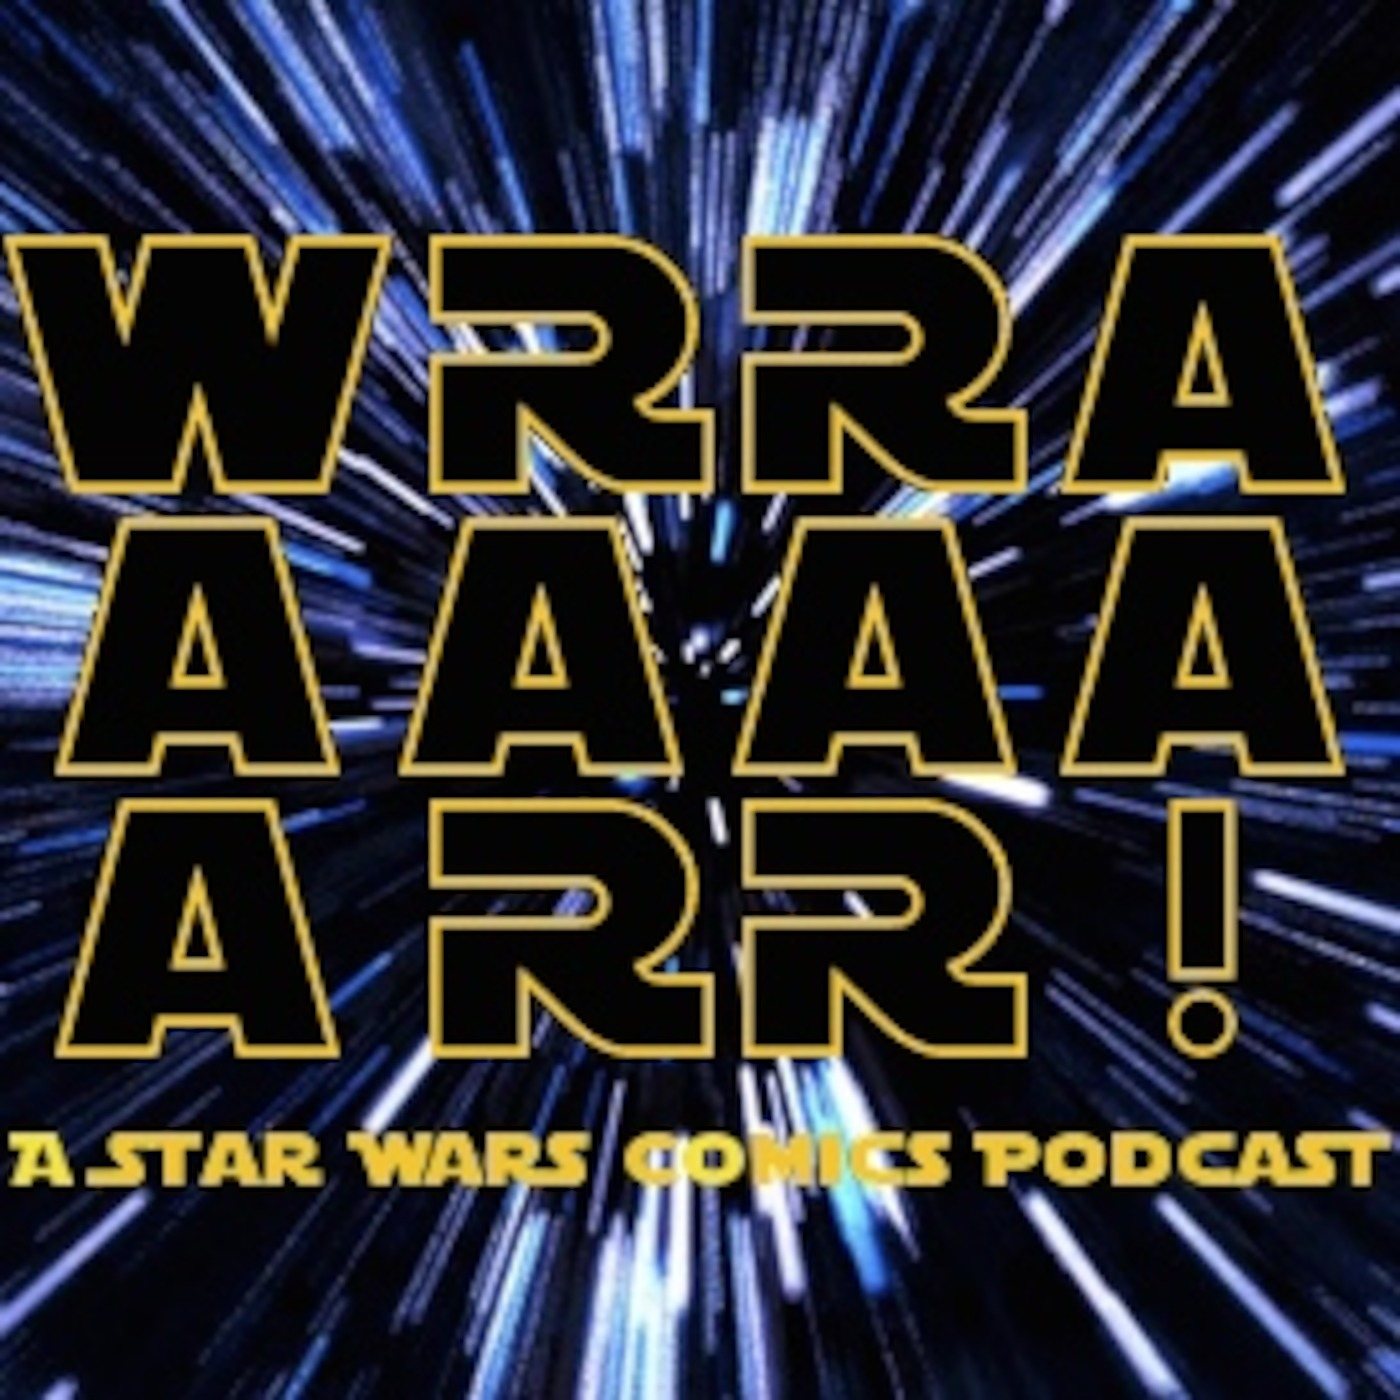 WRRAAAAAARR!: a Star Wars Comics Podcast